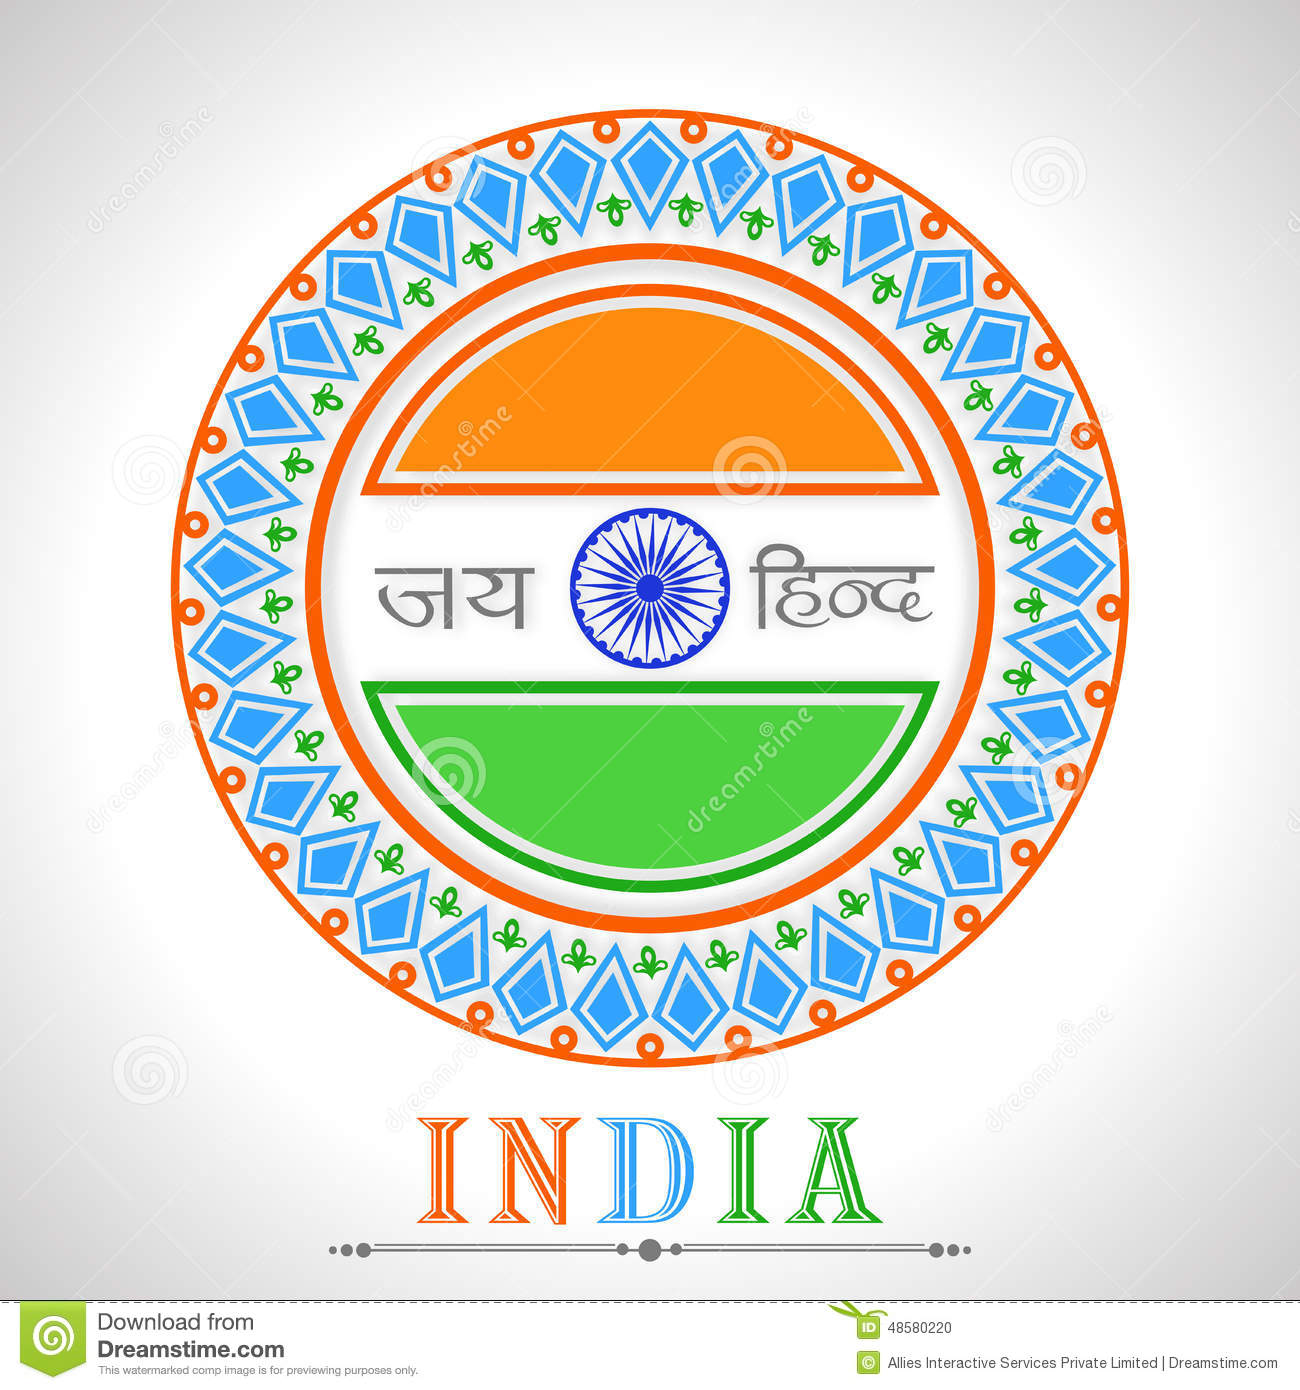 Sticker or label design for indian republic day